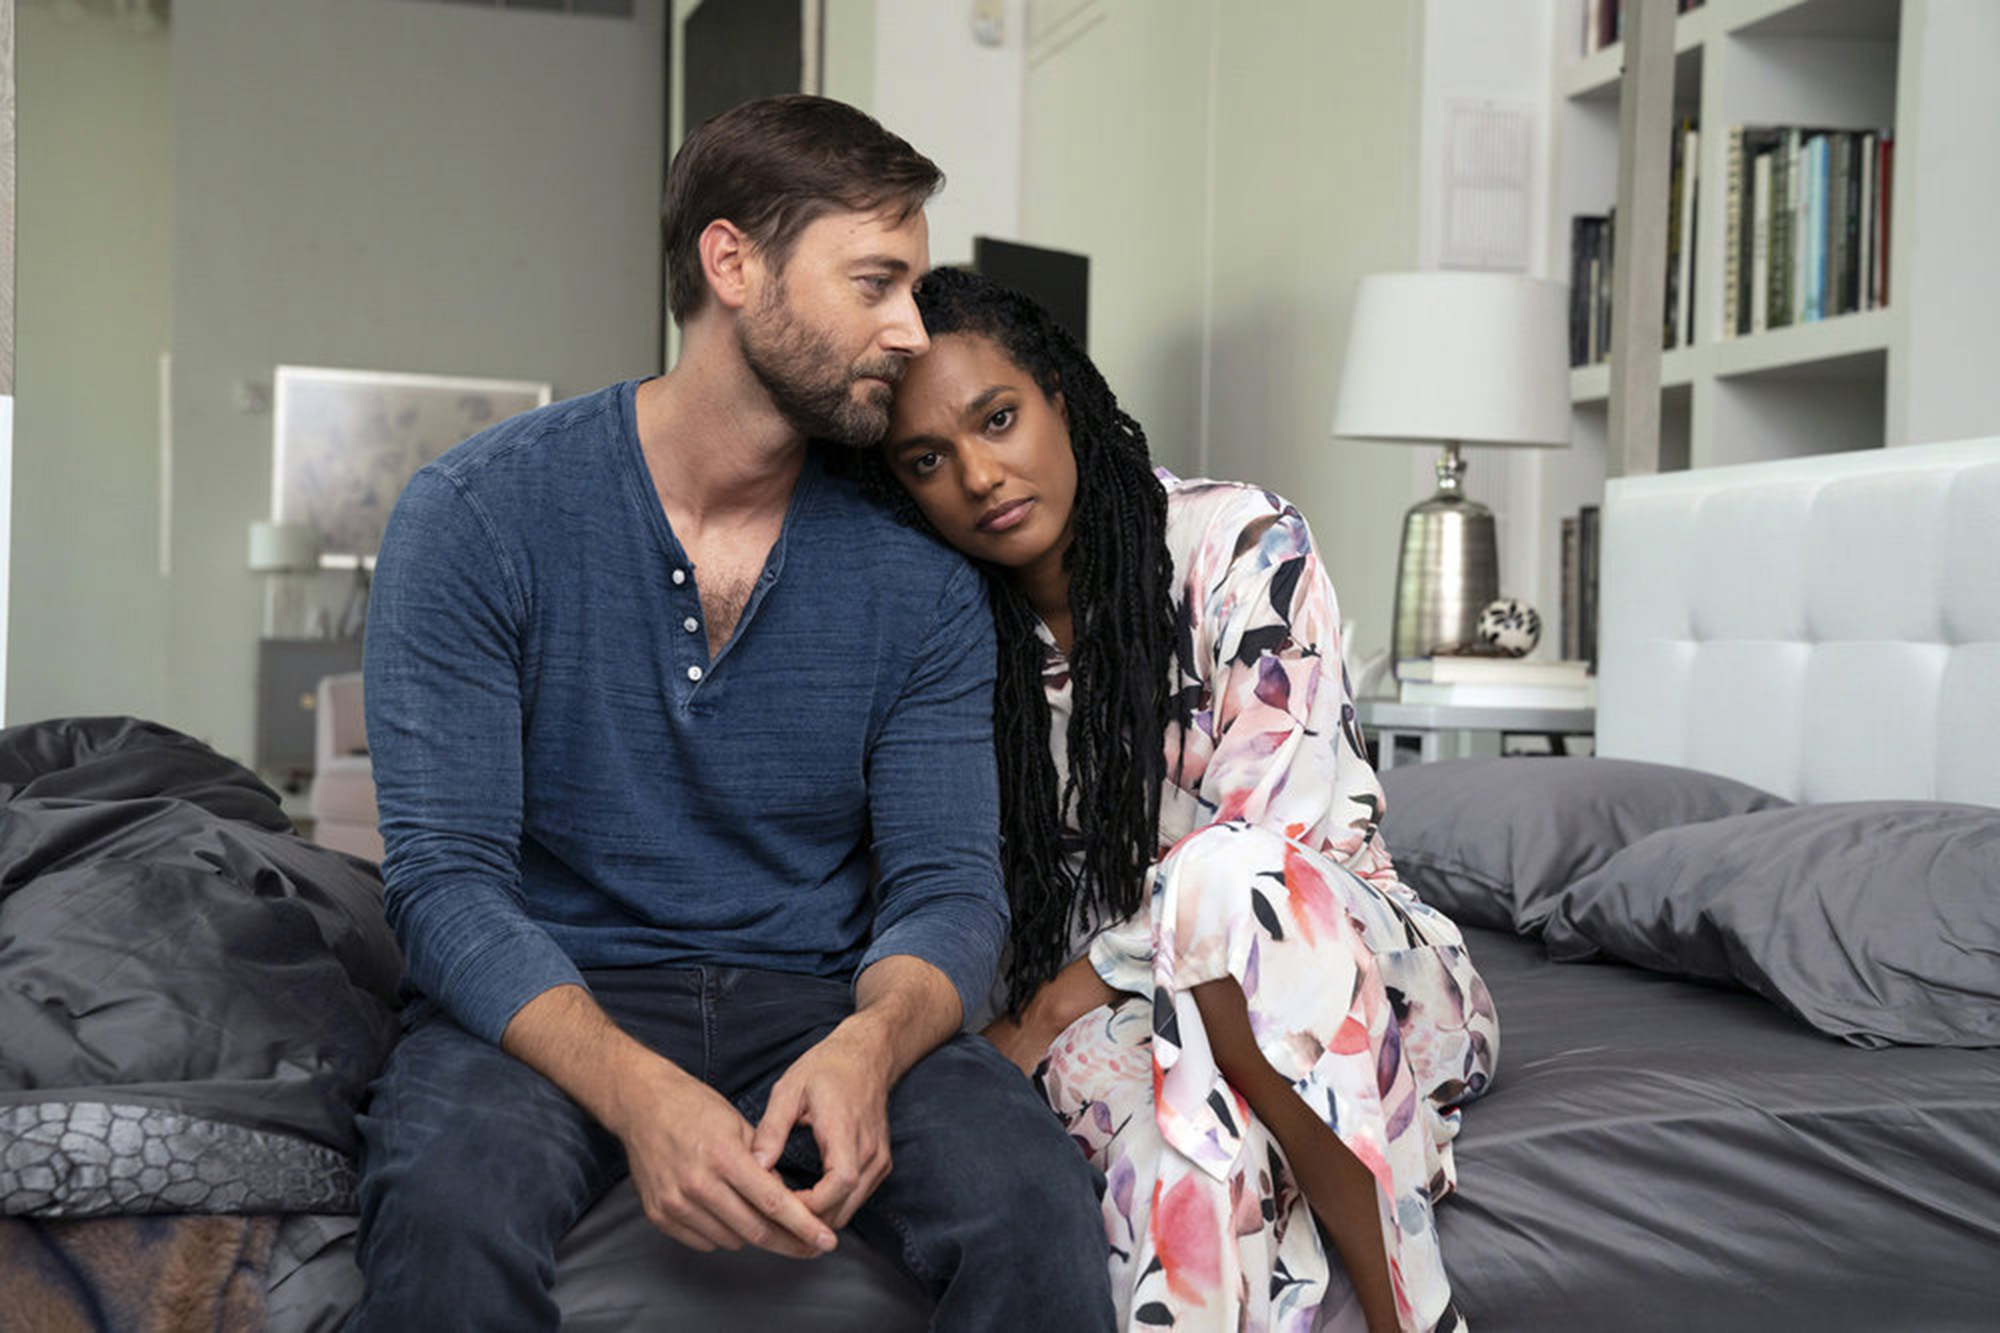 """Ryan Eggold as Max sits on a bed and leans against Freema Agyeman as Helen in """"New Amsterdam."""""""